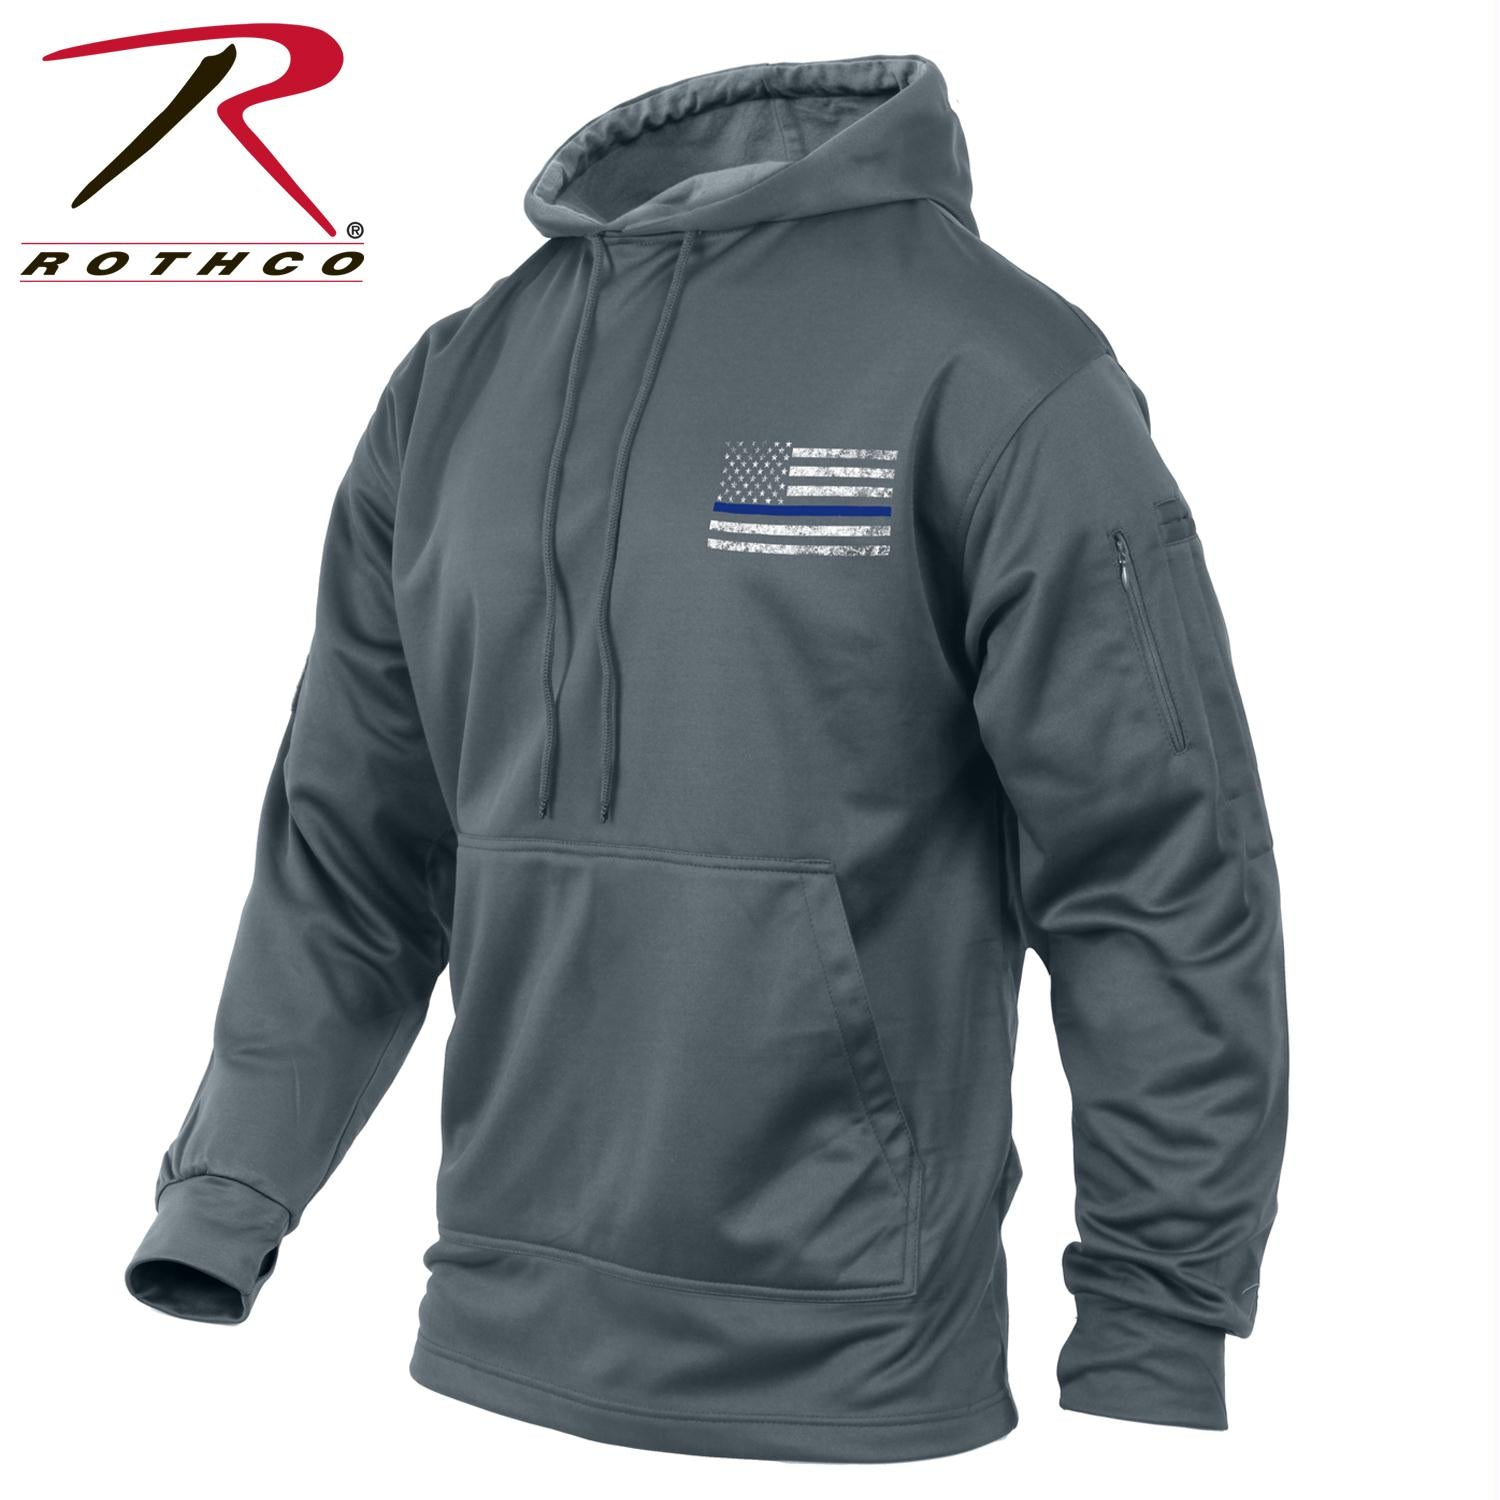 Rothco Thin Blue Line Concealed Carry Hoodie - Grey / 2XL